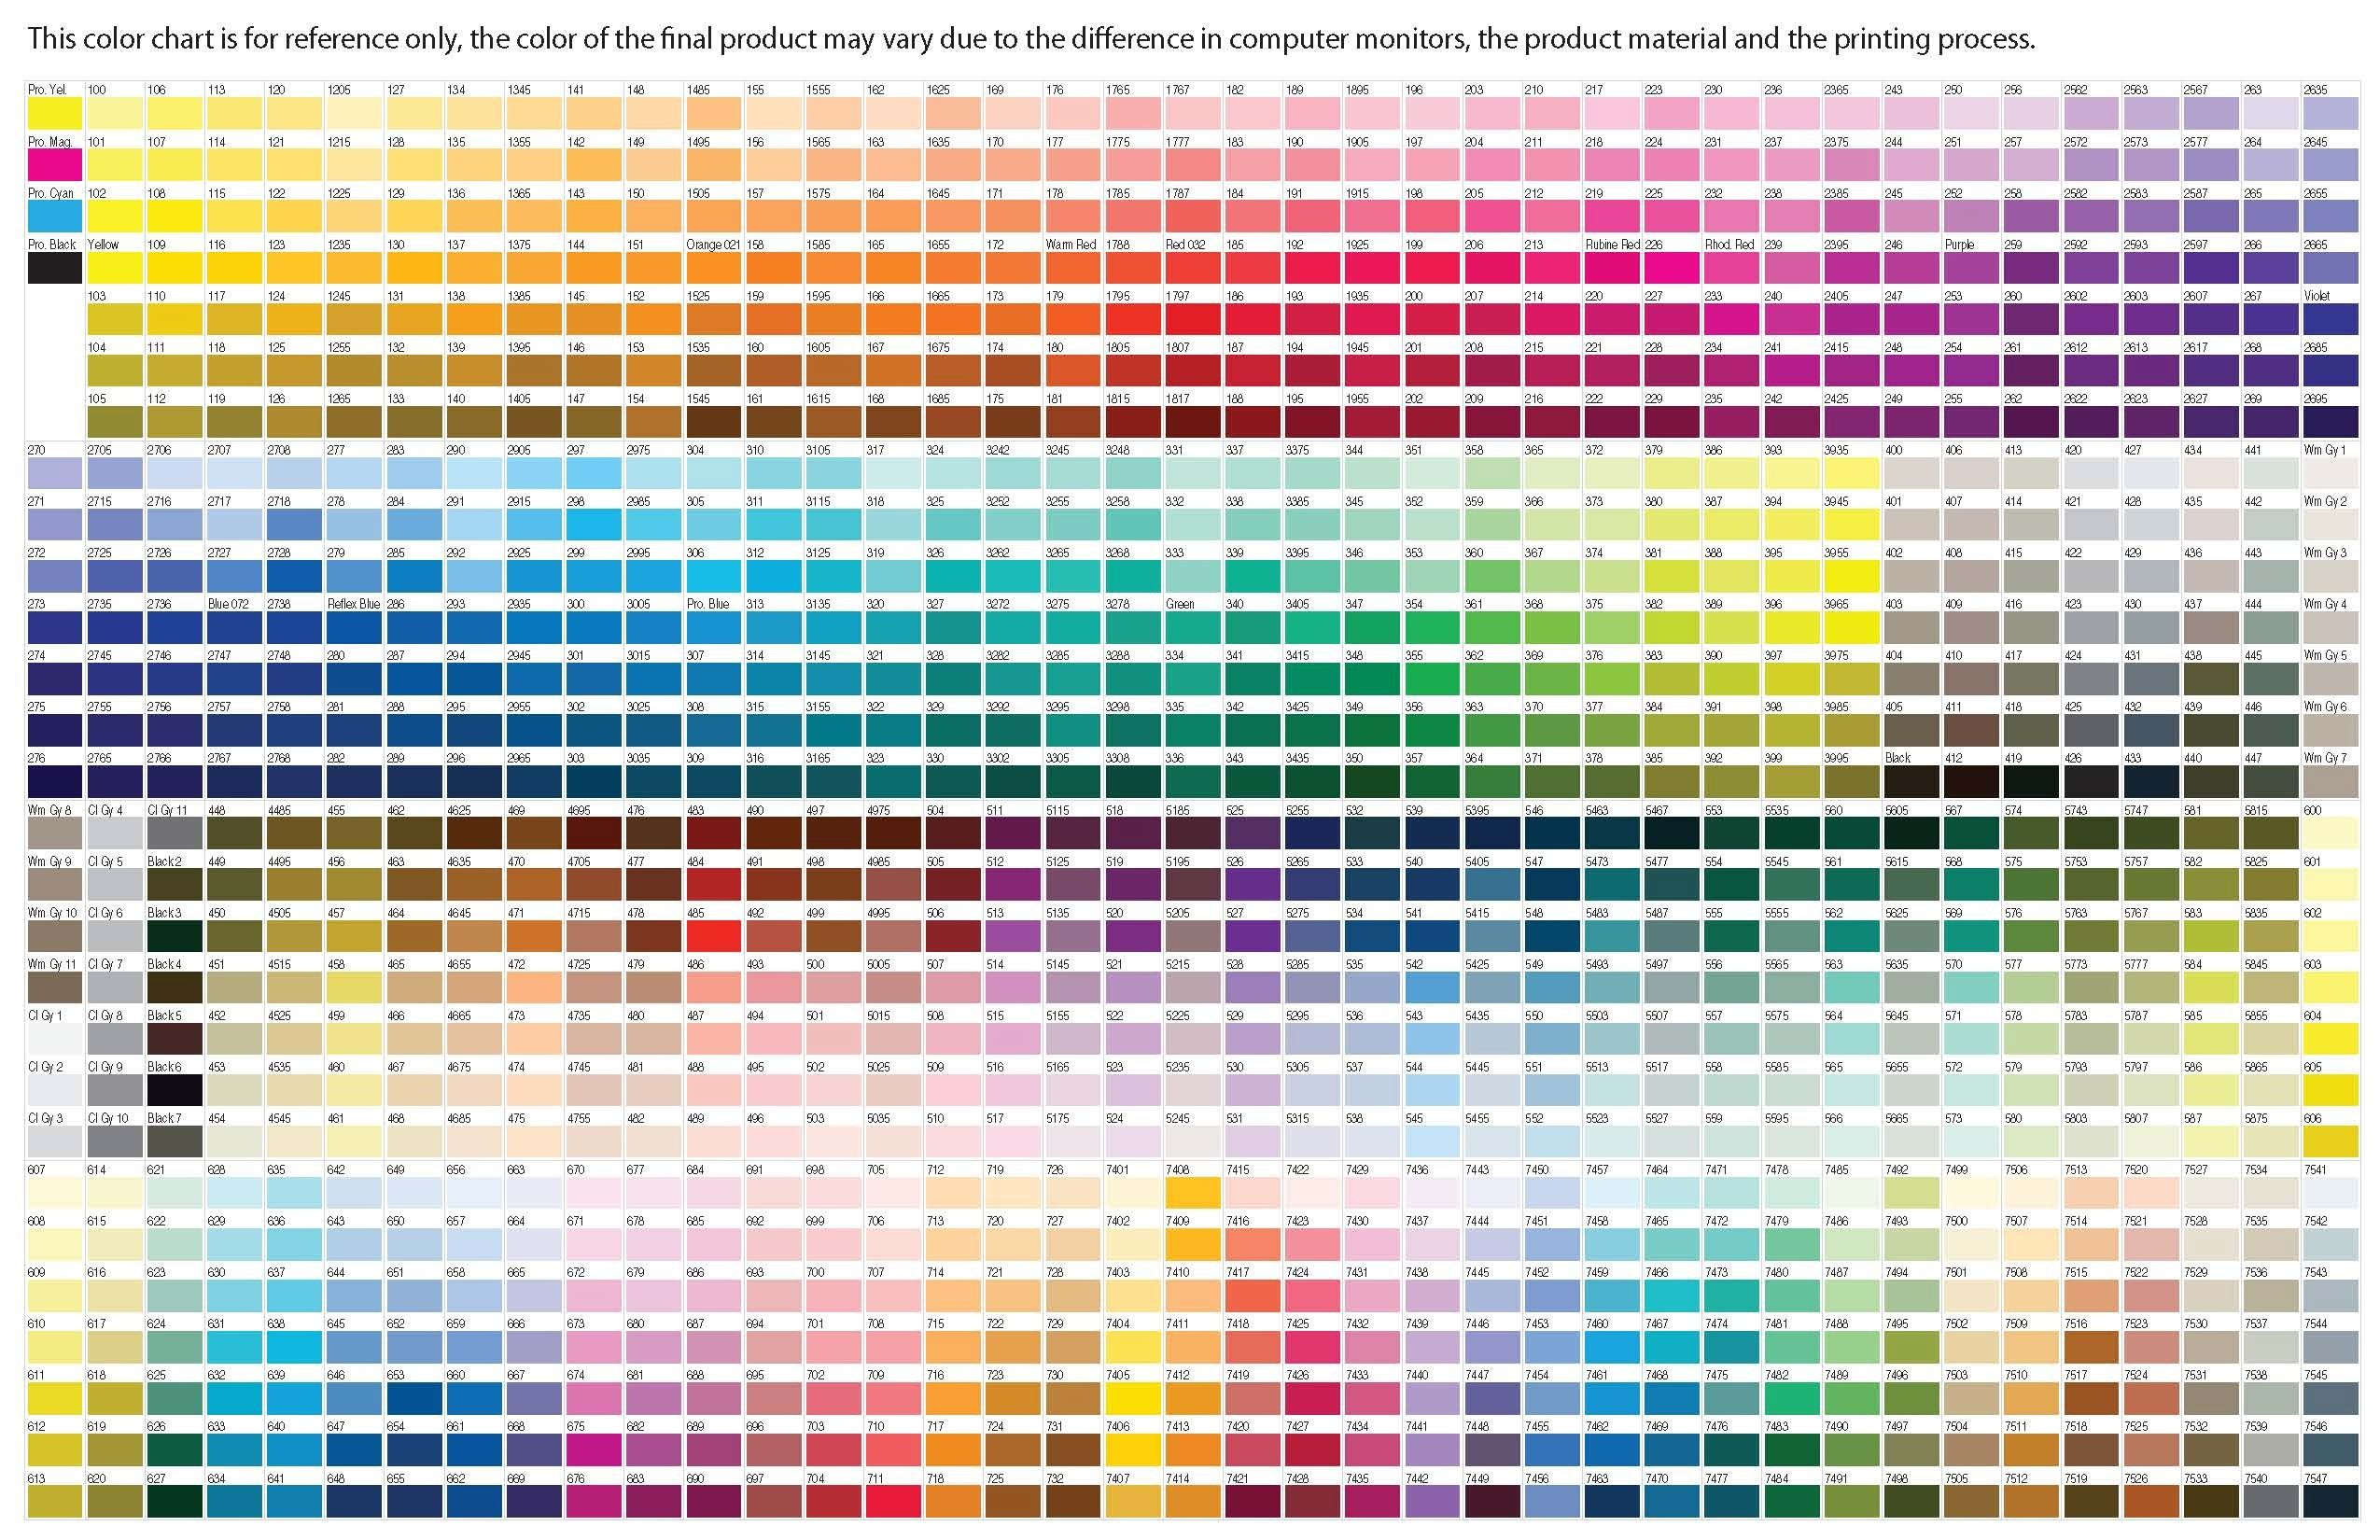 Did You Know That Pantone Used By Painters Fashion Designers Graphic Artists And Countries To Standardize Pantone Color Chart Pms Color Chart Pantone Cmyk